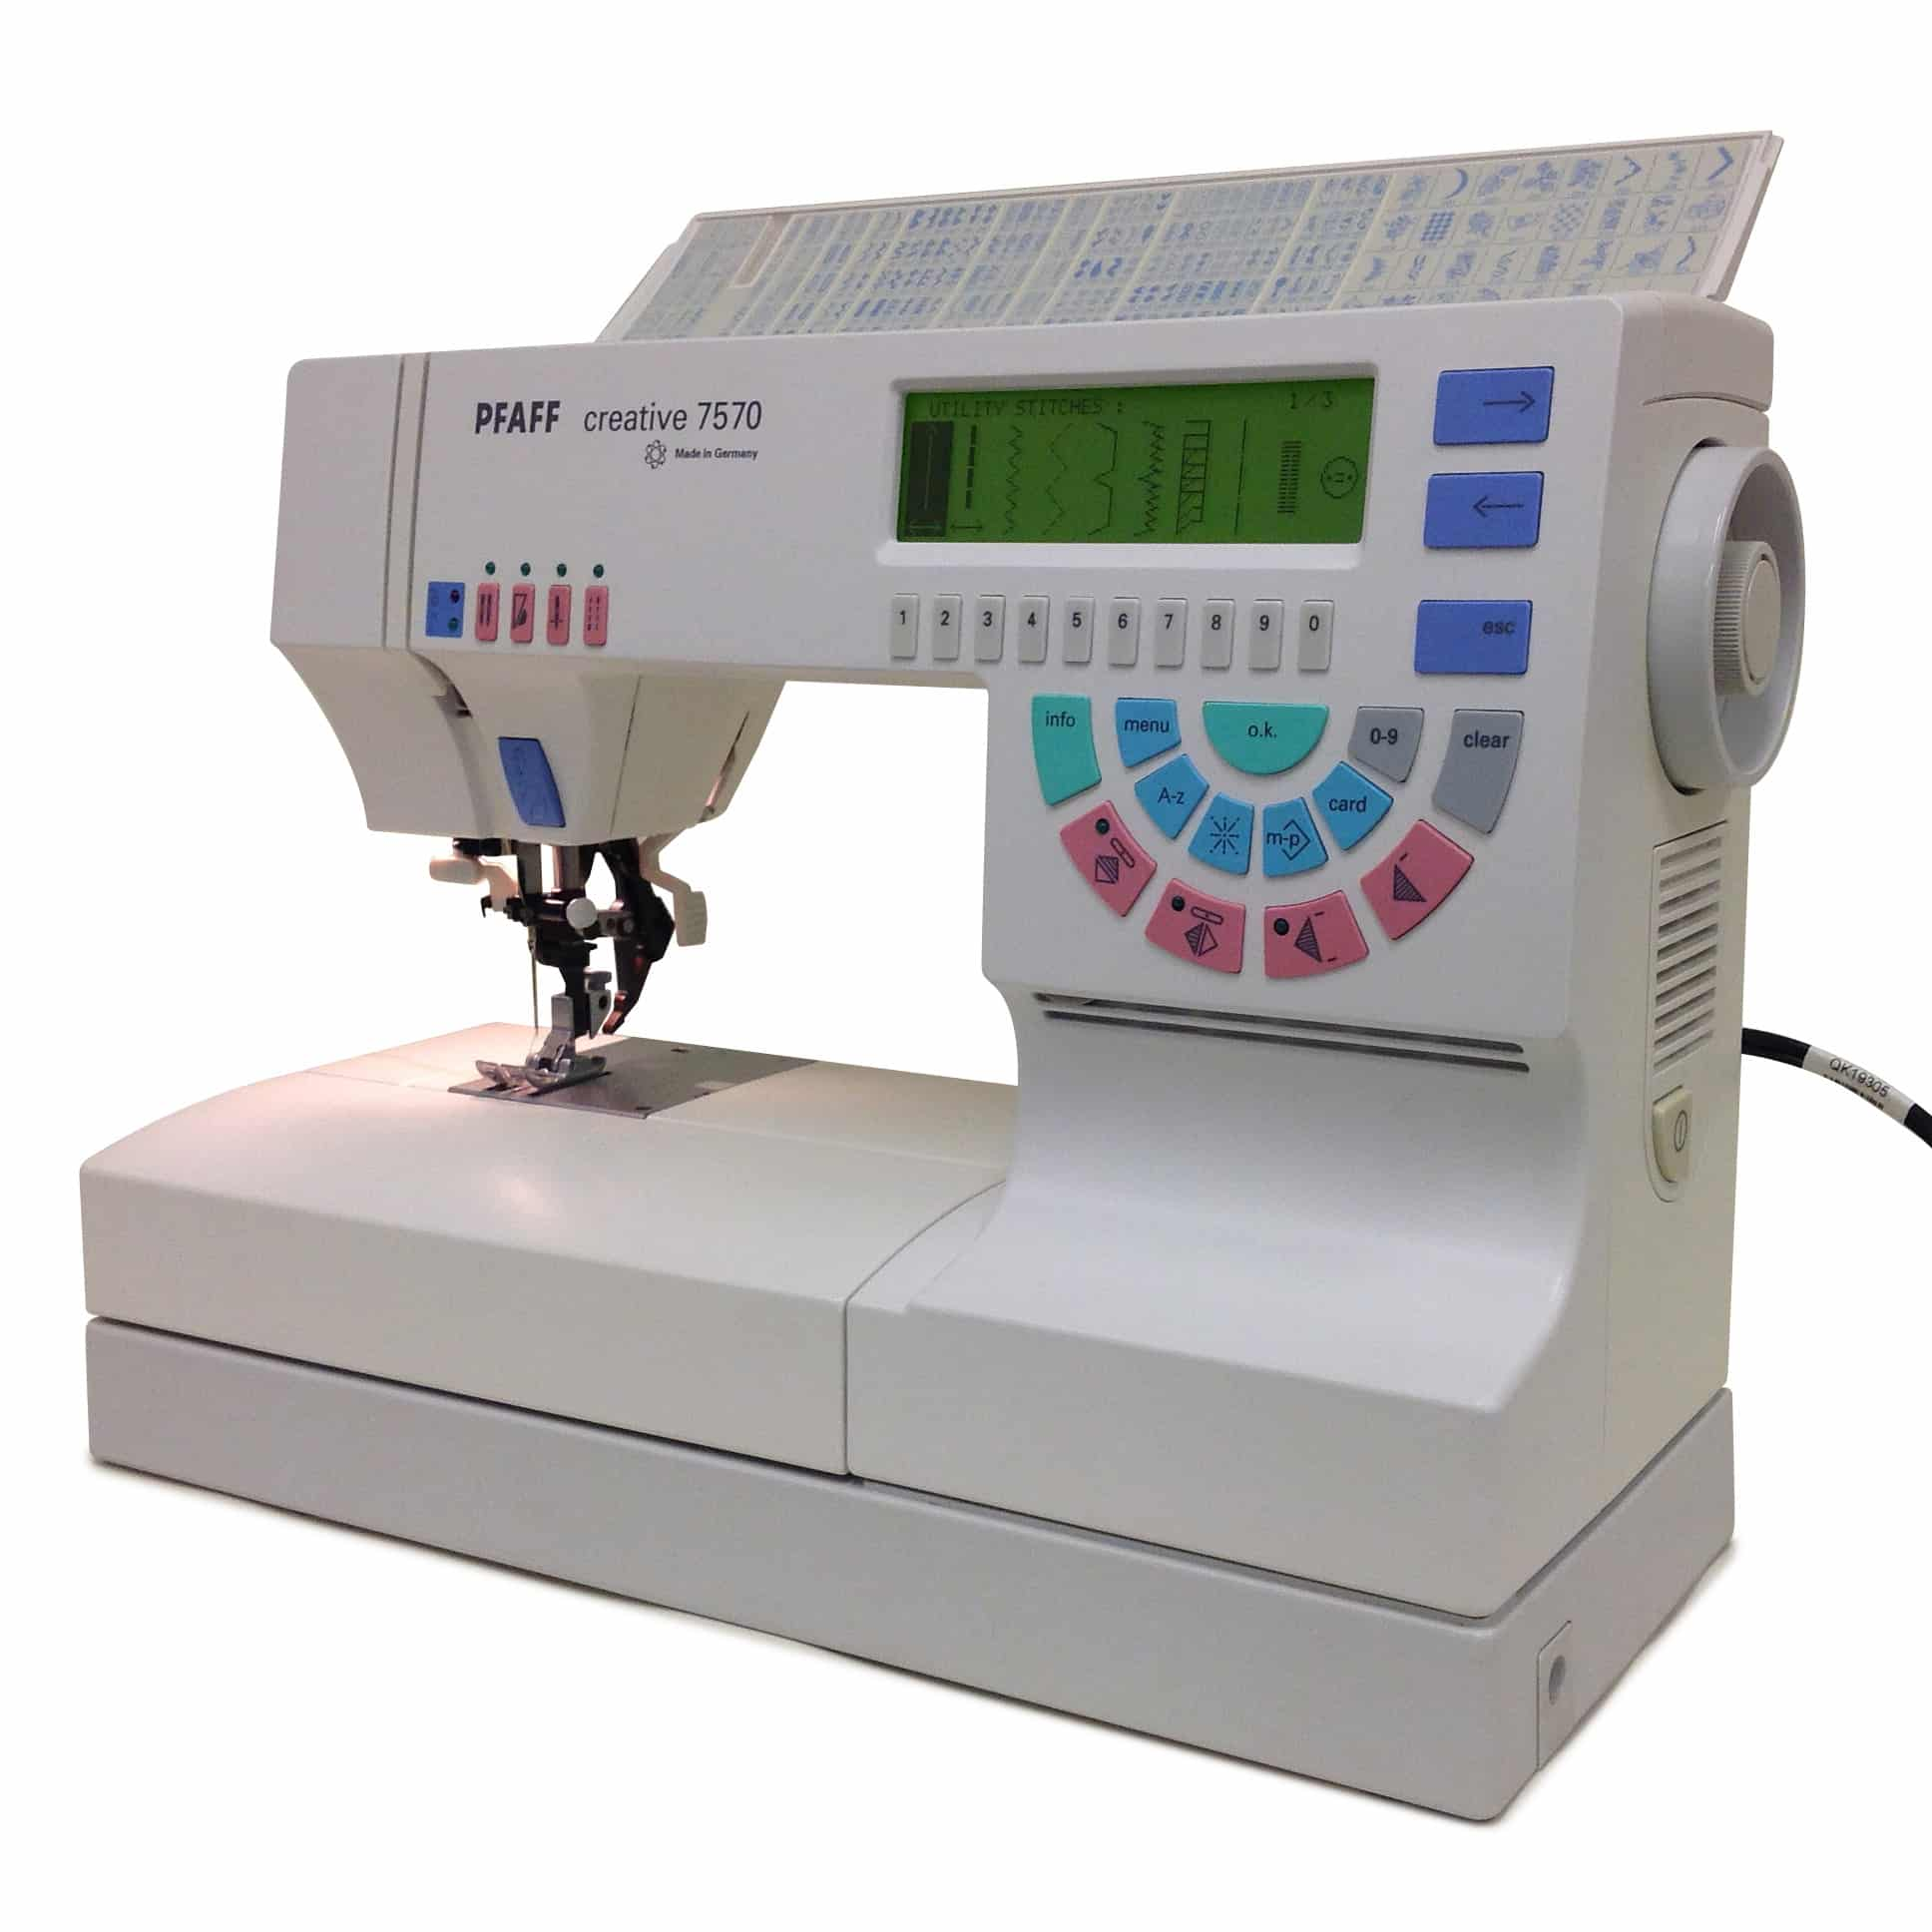 pfaff creative 7570 embroidery machine